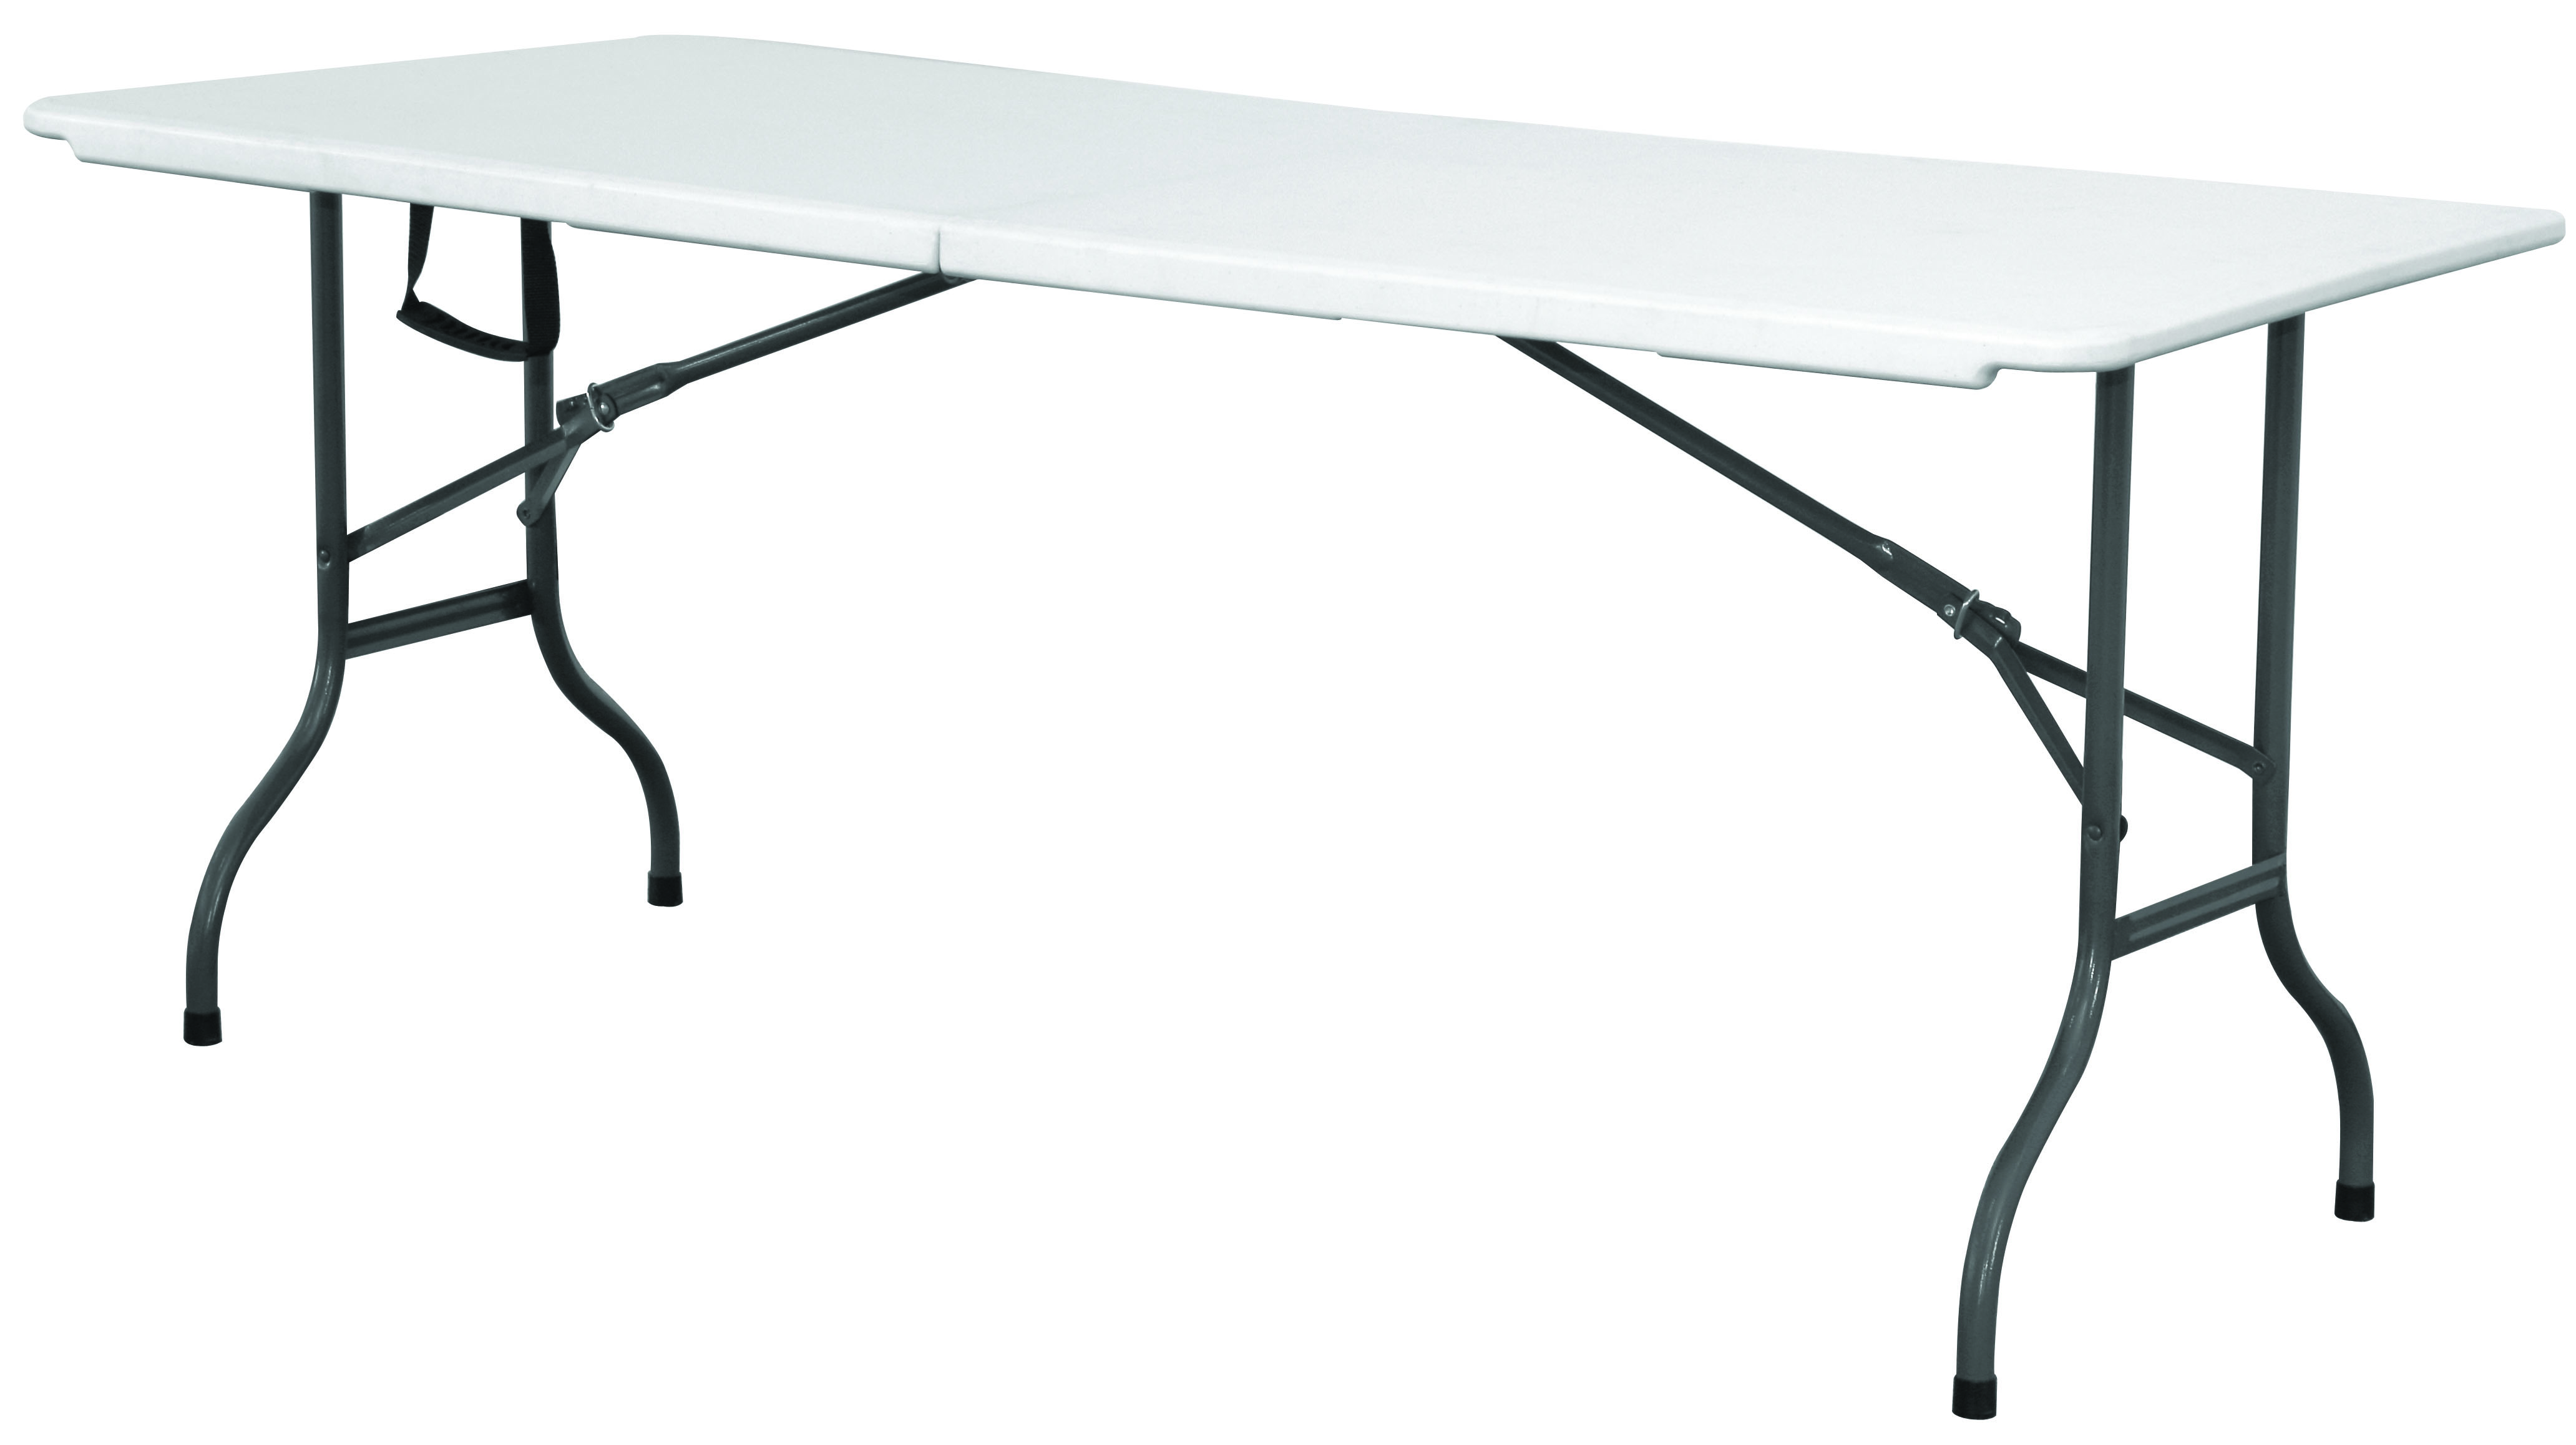 Centre Folding Table 6' White HDPE